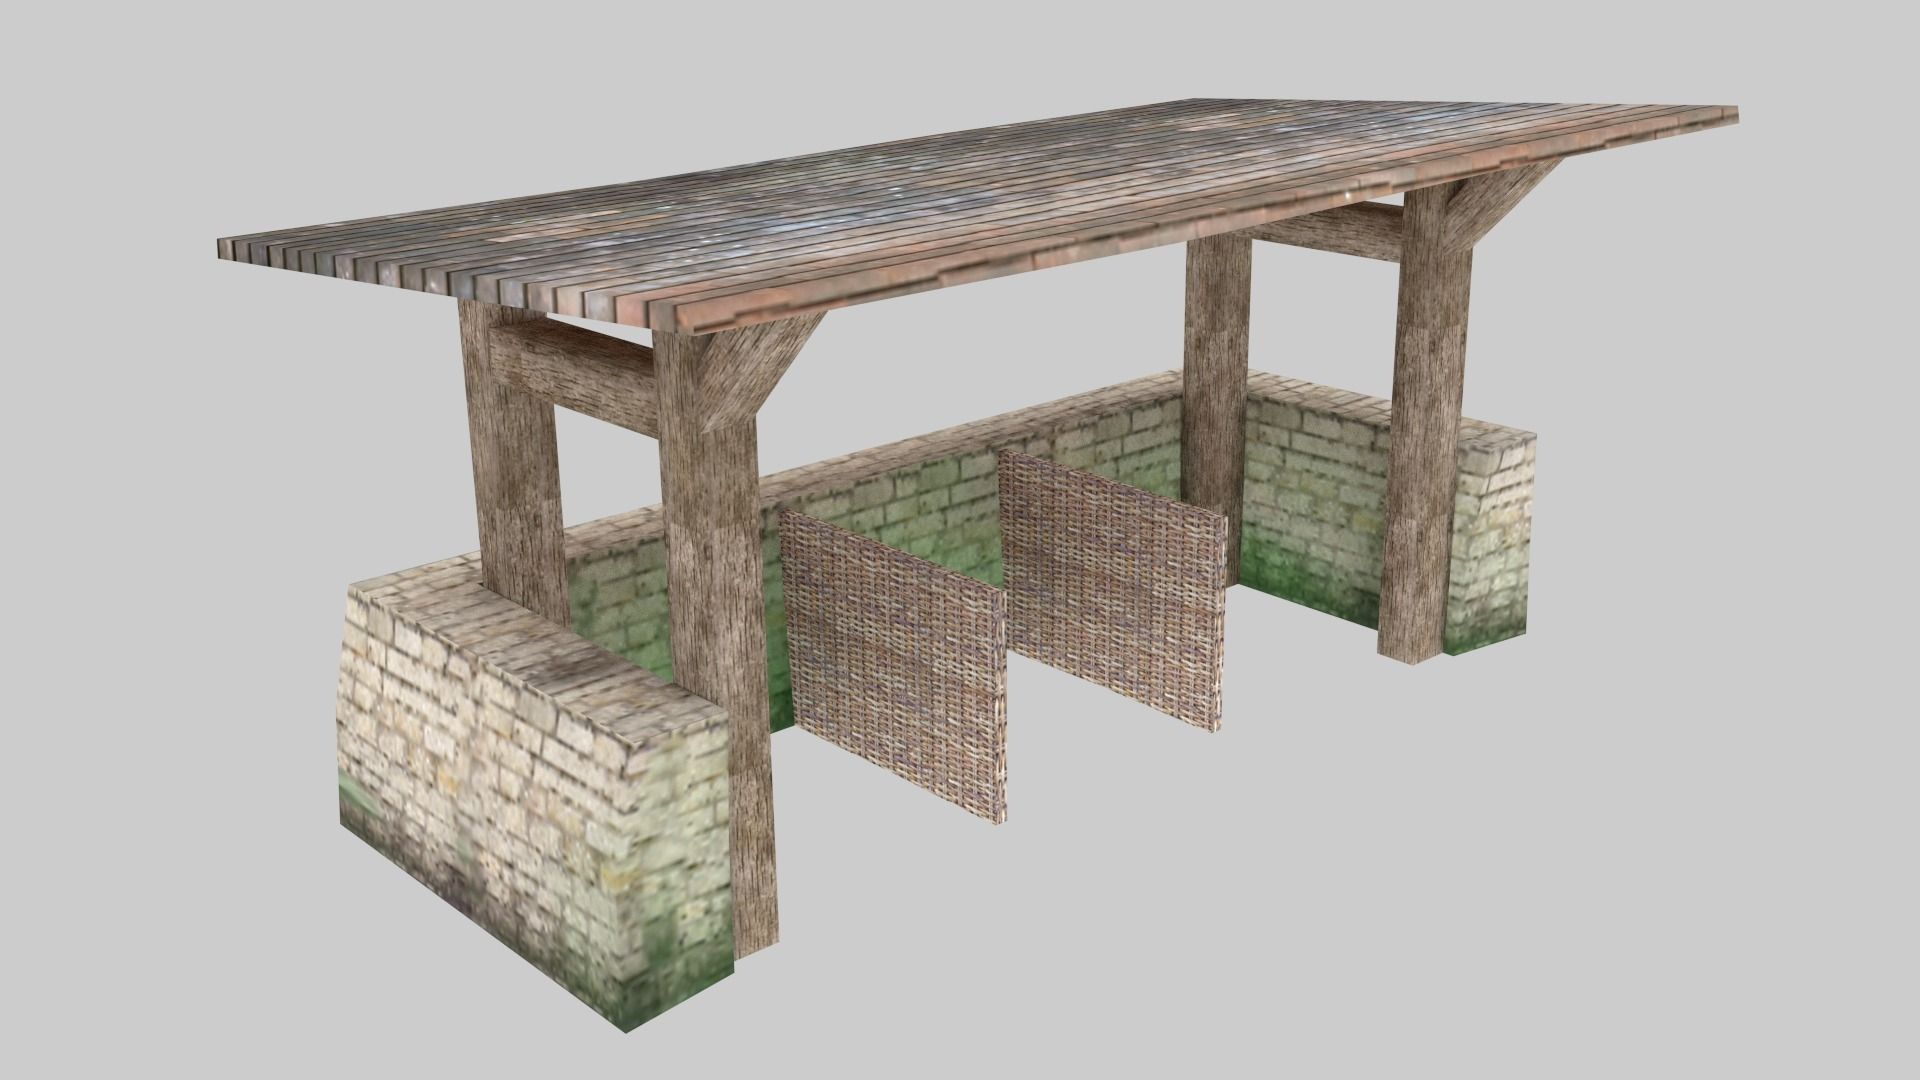 Medieval stable low poly 3D asset   CGTrader for Medieval Stable  584dqh